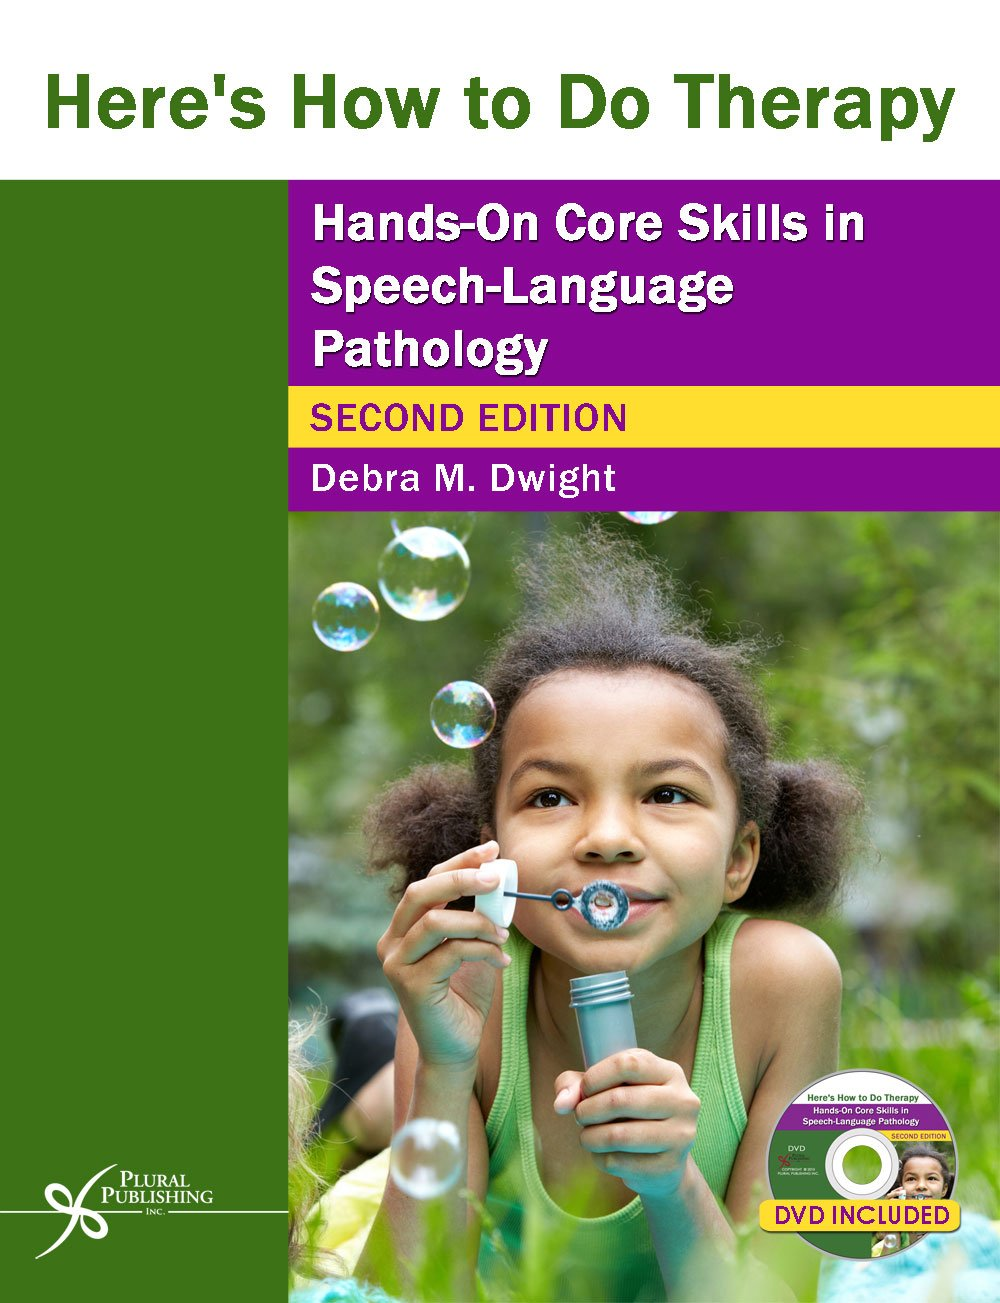 Here's How to Do Therapy: Hands on Core Skills in Speech-Language Pathology, Second Edition by Plural Publishing, Inc.